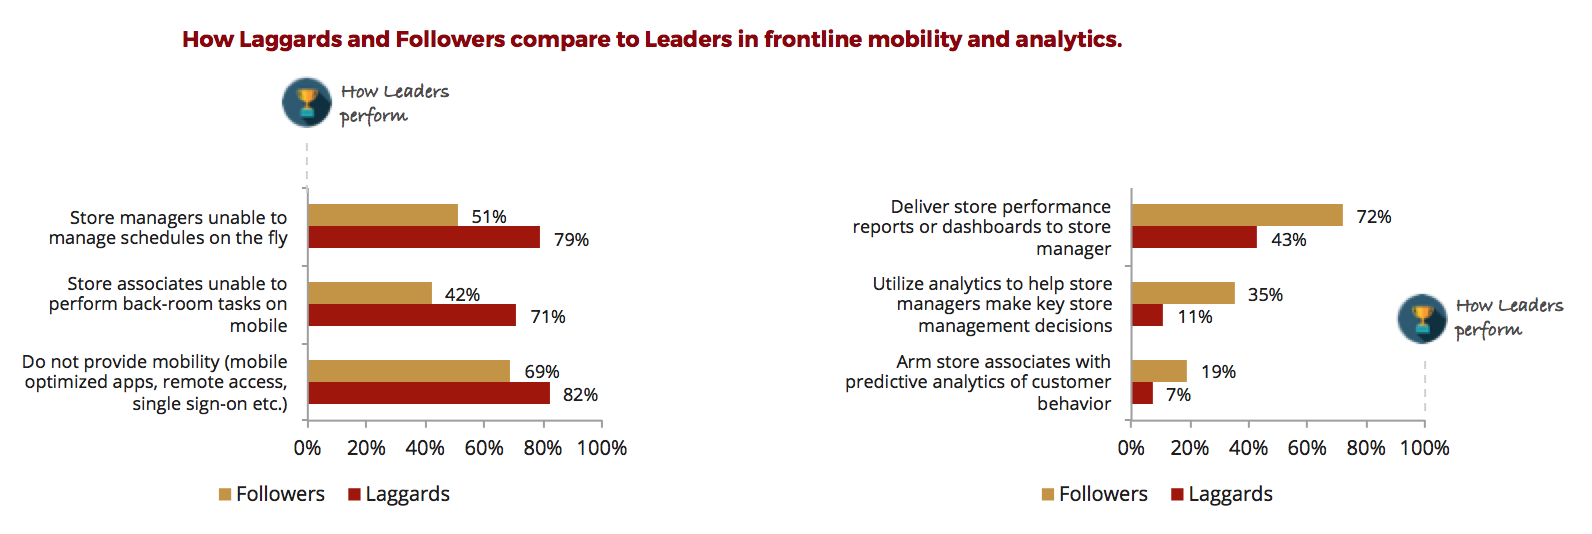 Frontline mobility and analytics